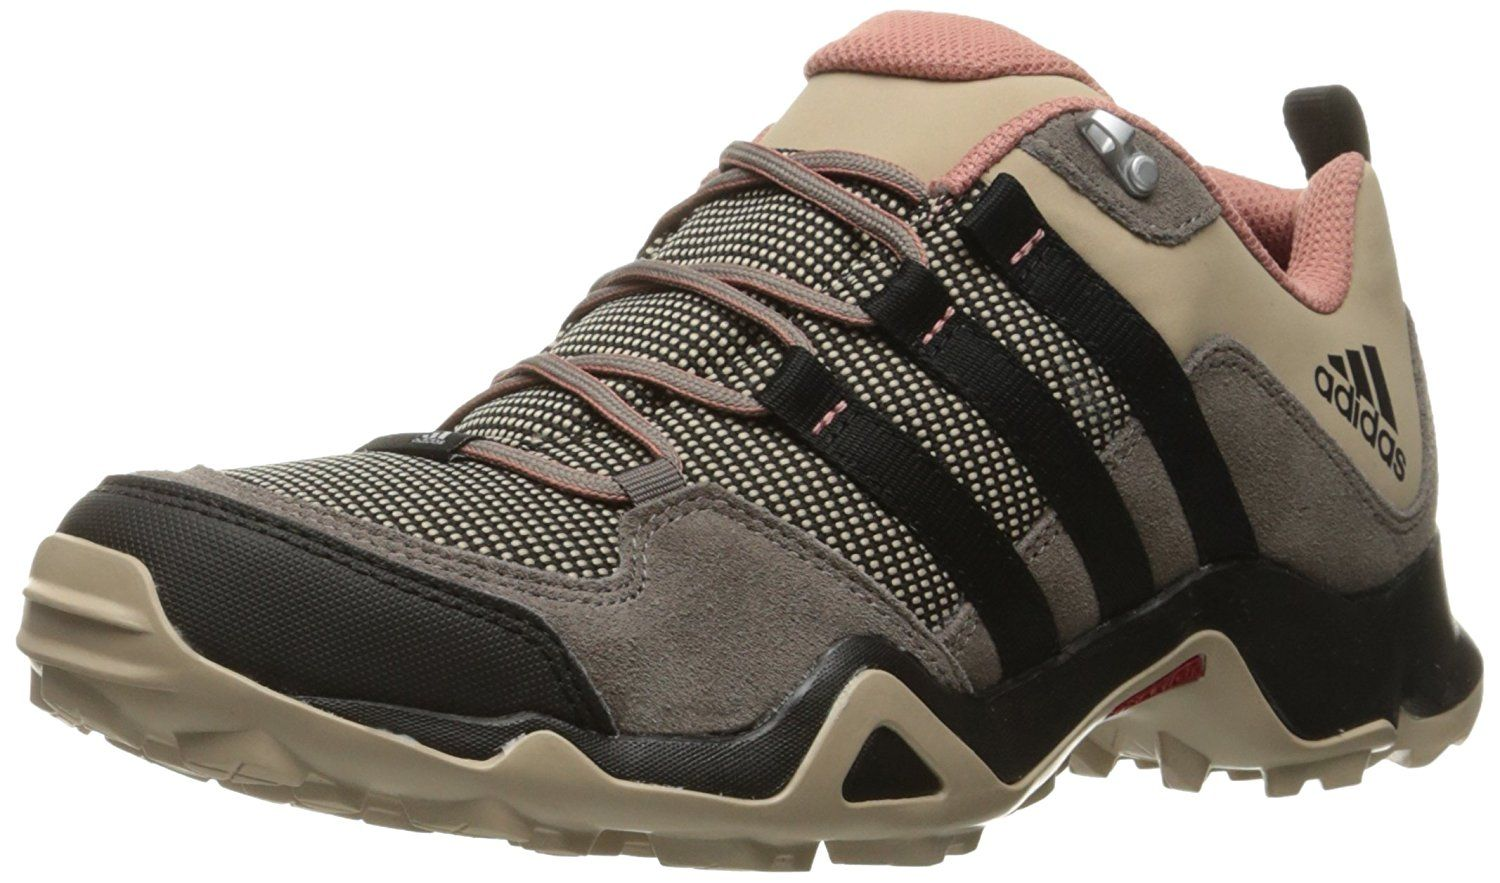 adidas hiking and trekking shoes online -